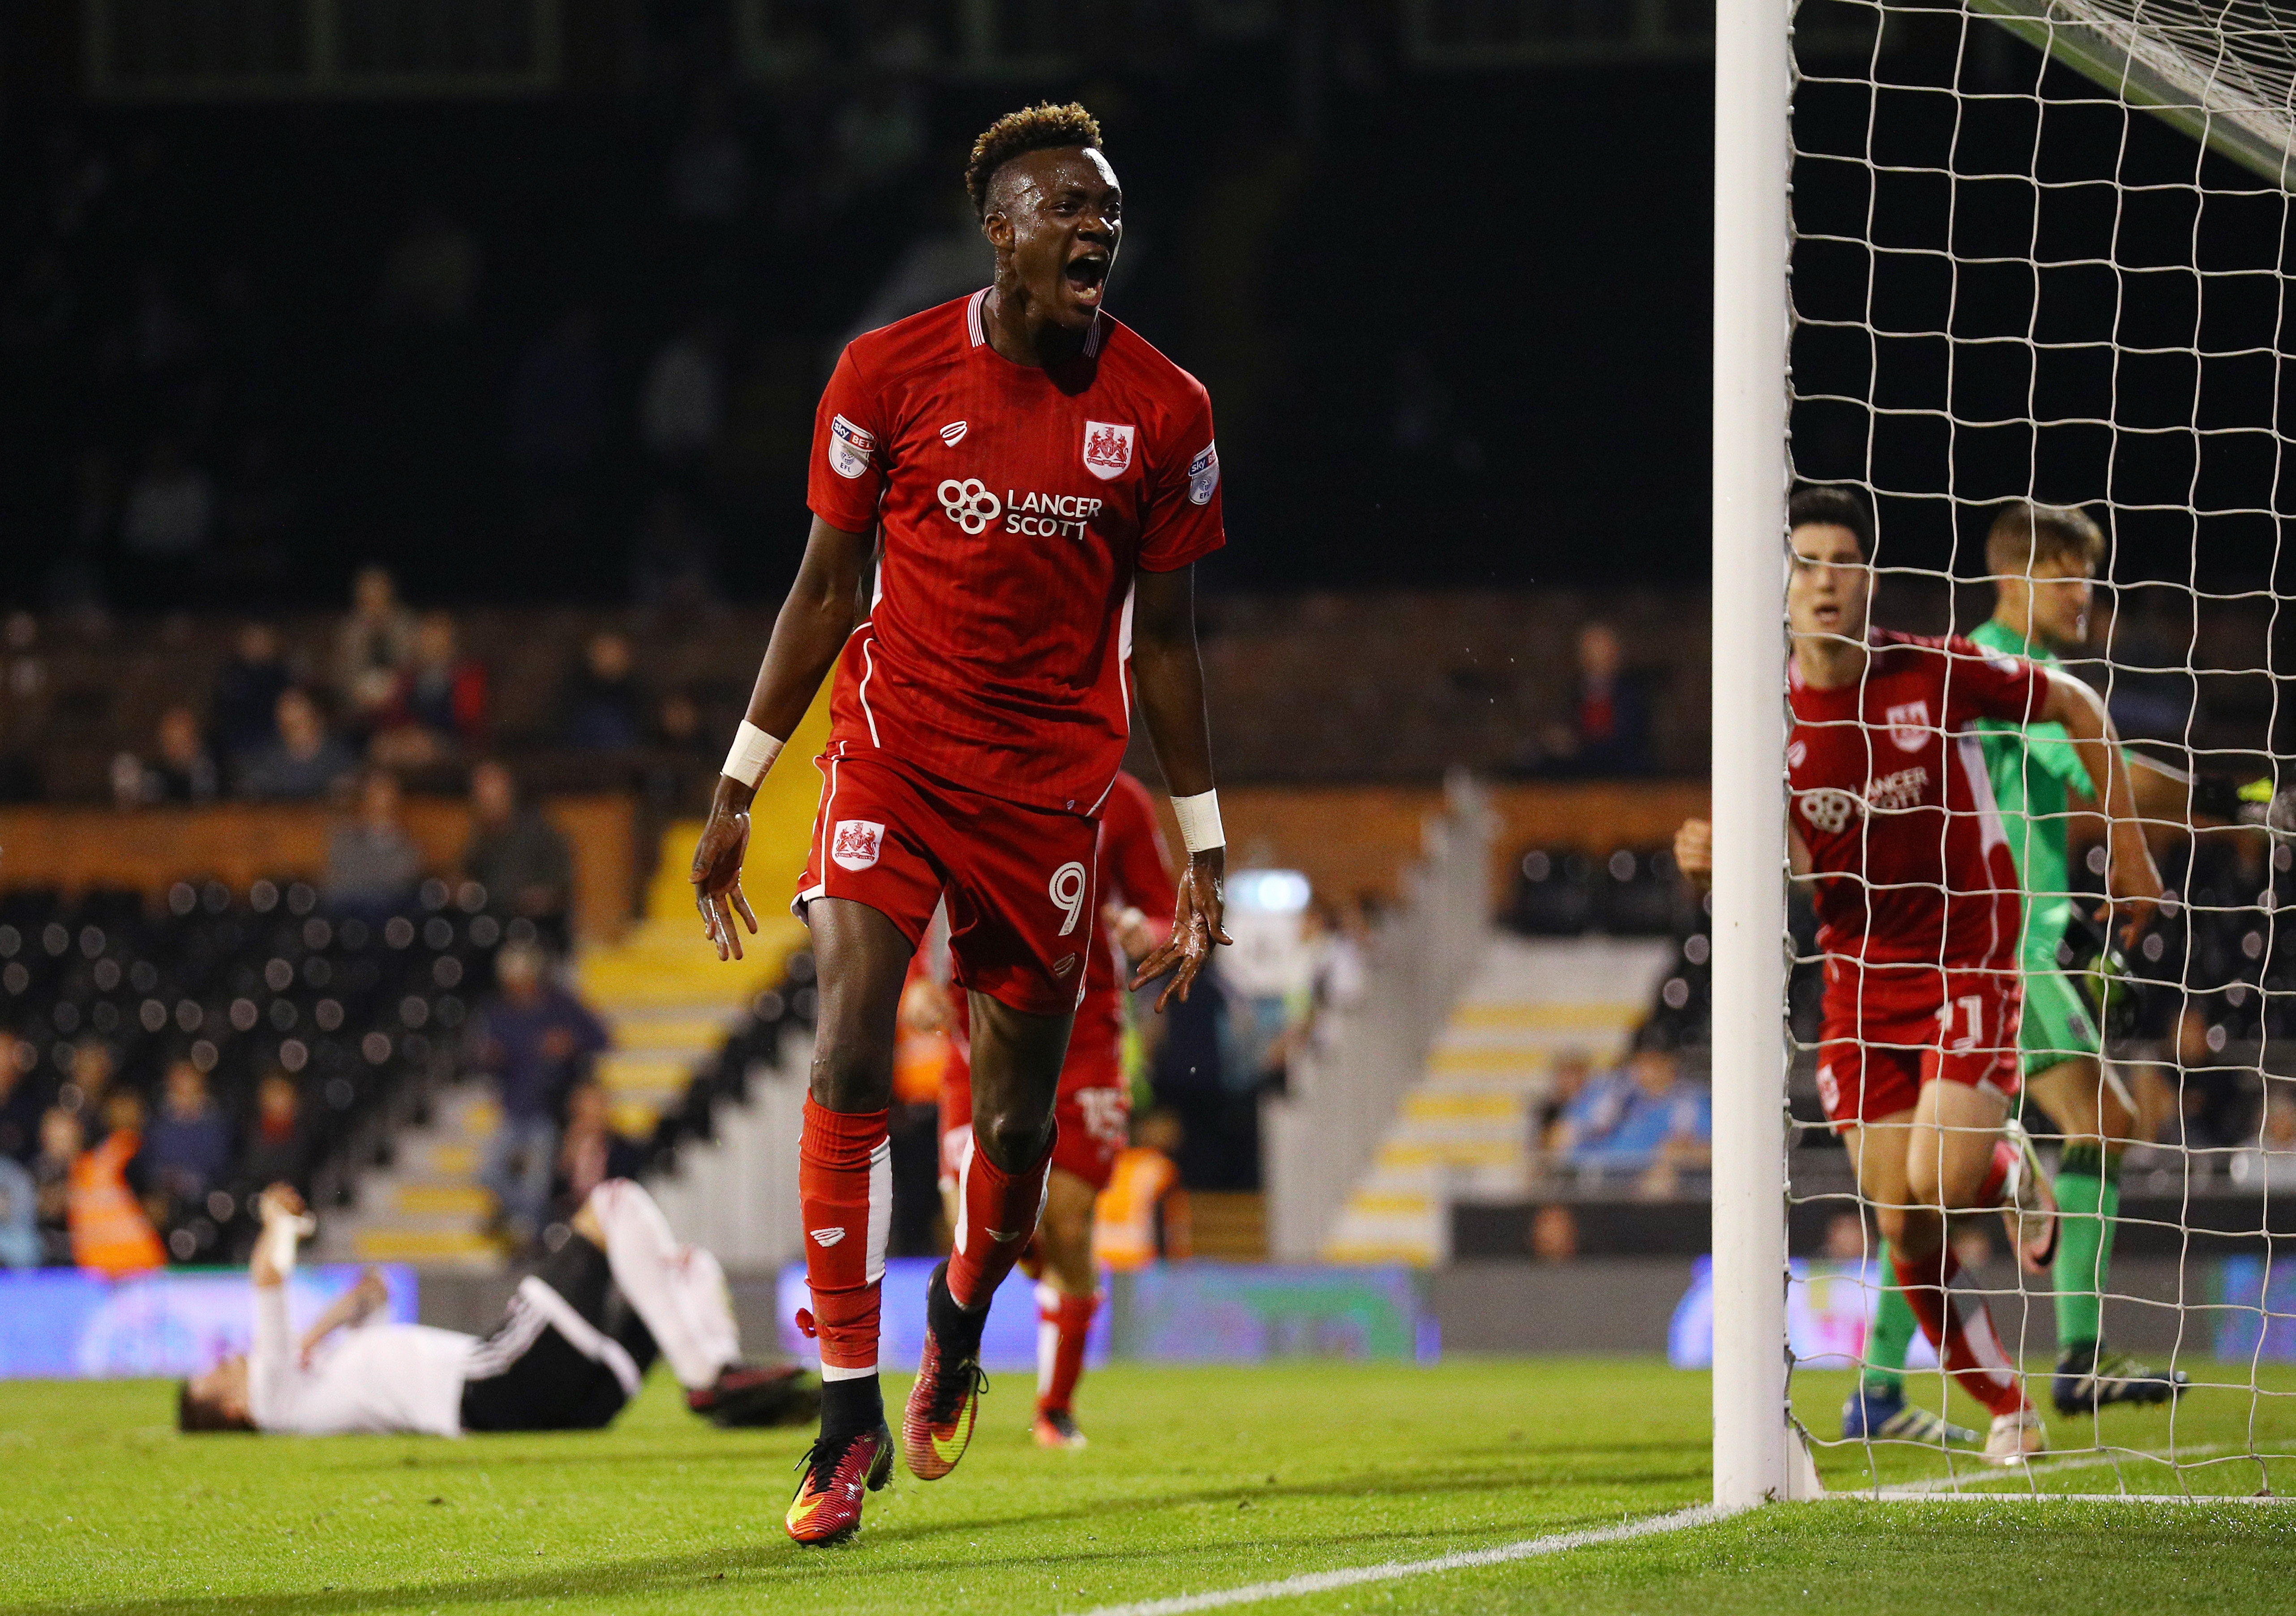 Chelsea youngster Tammy Abraham has a bright future, says loan chief Eddie Newton